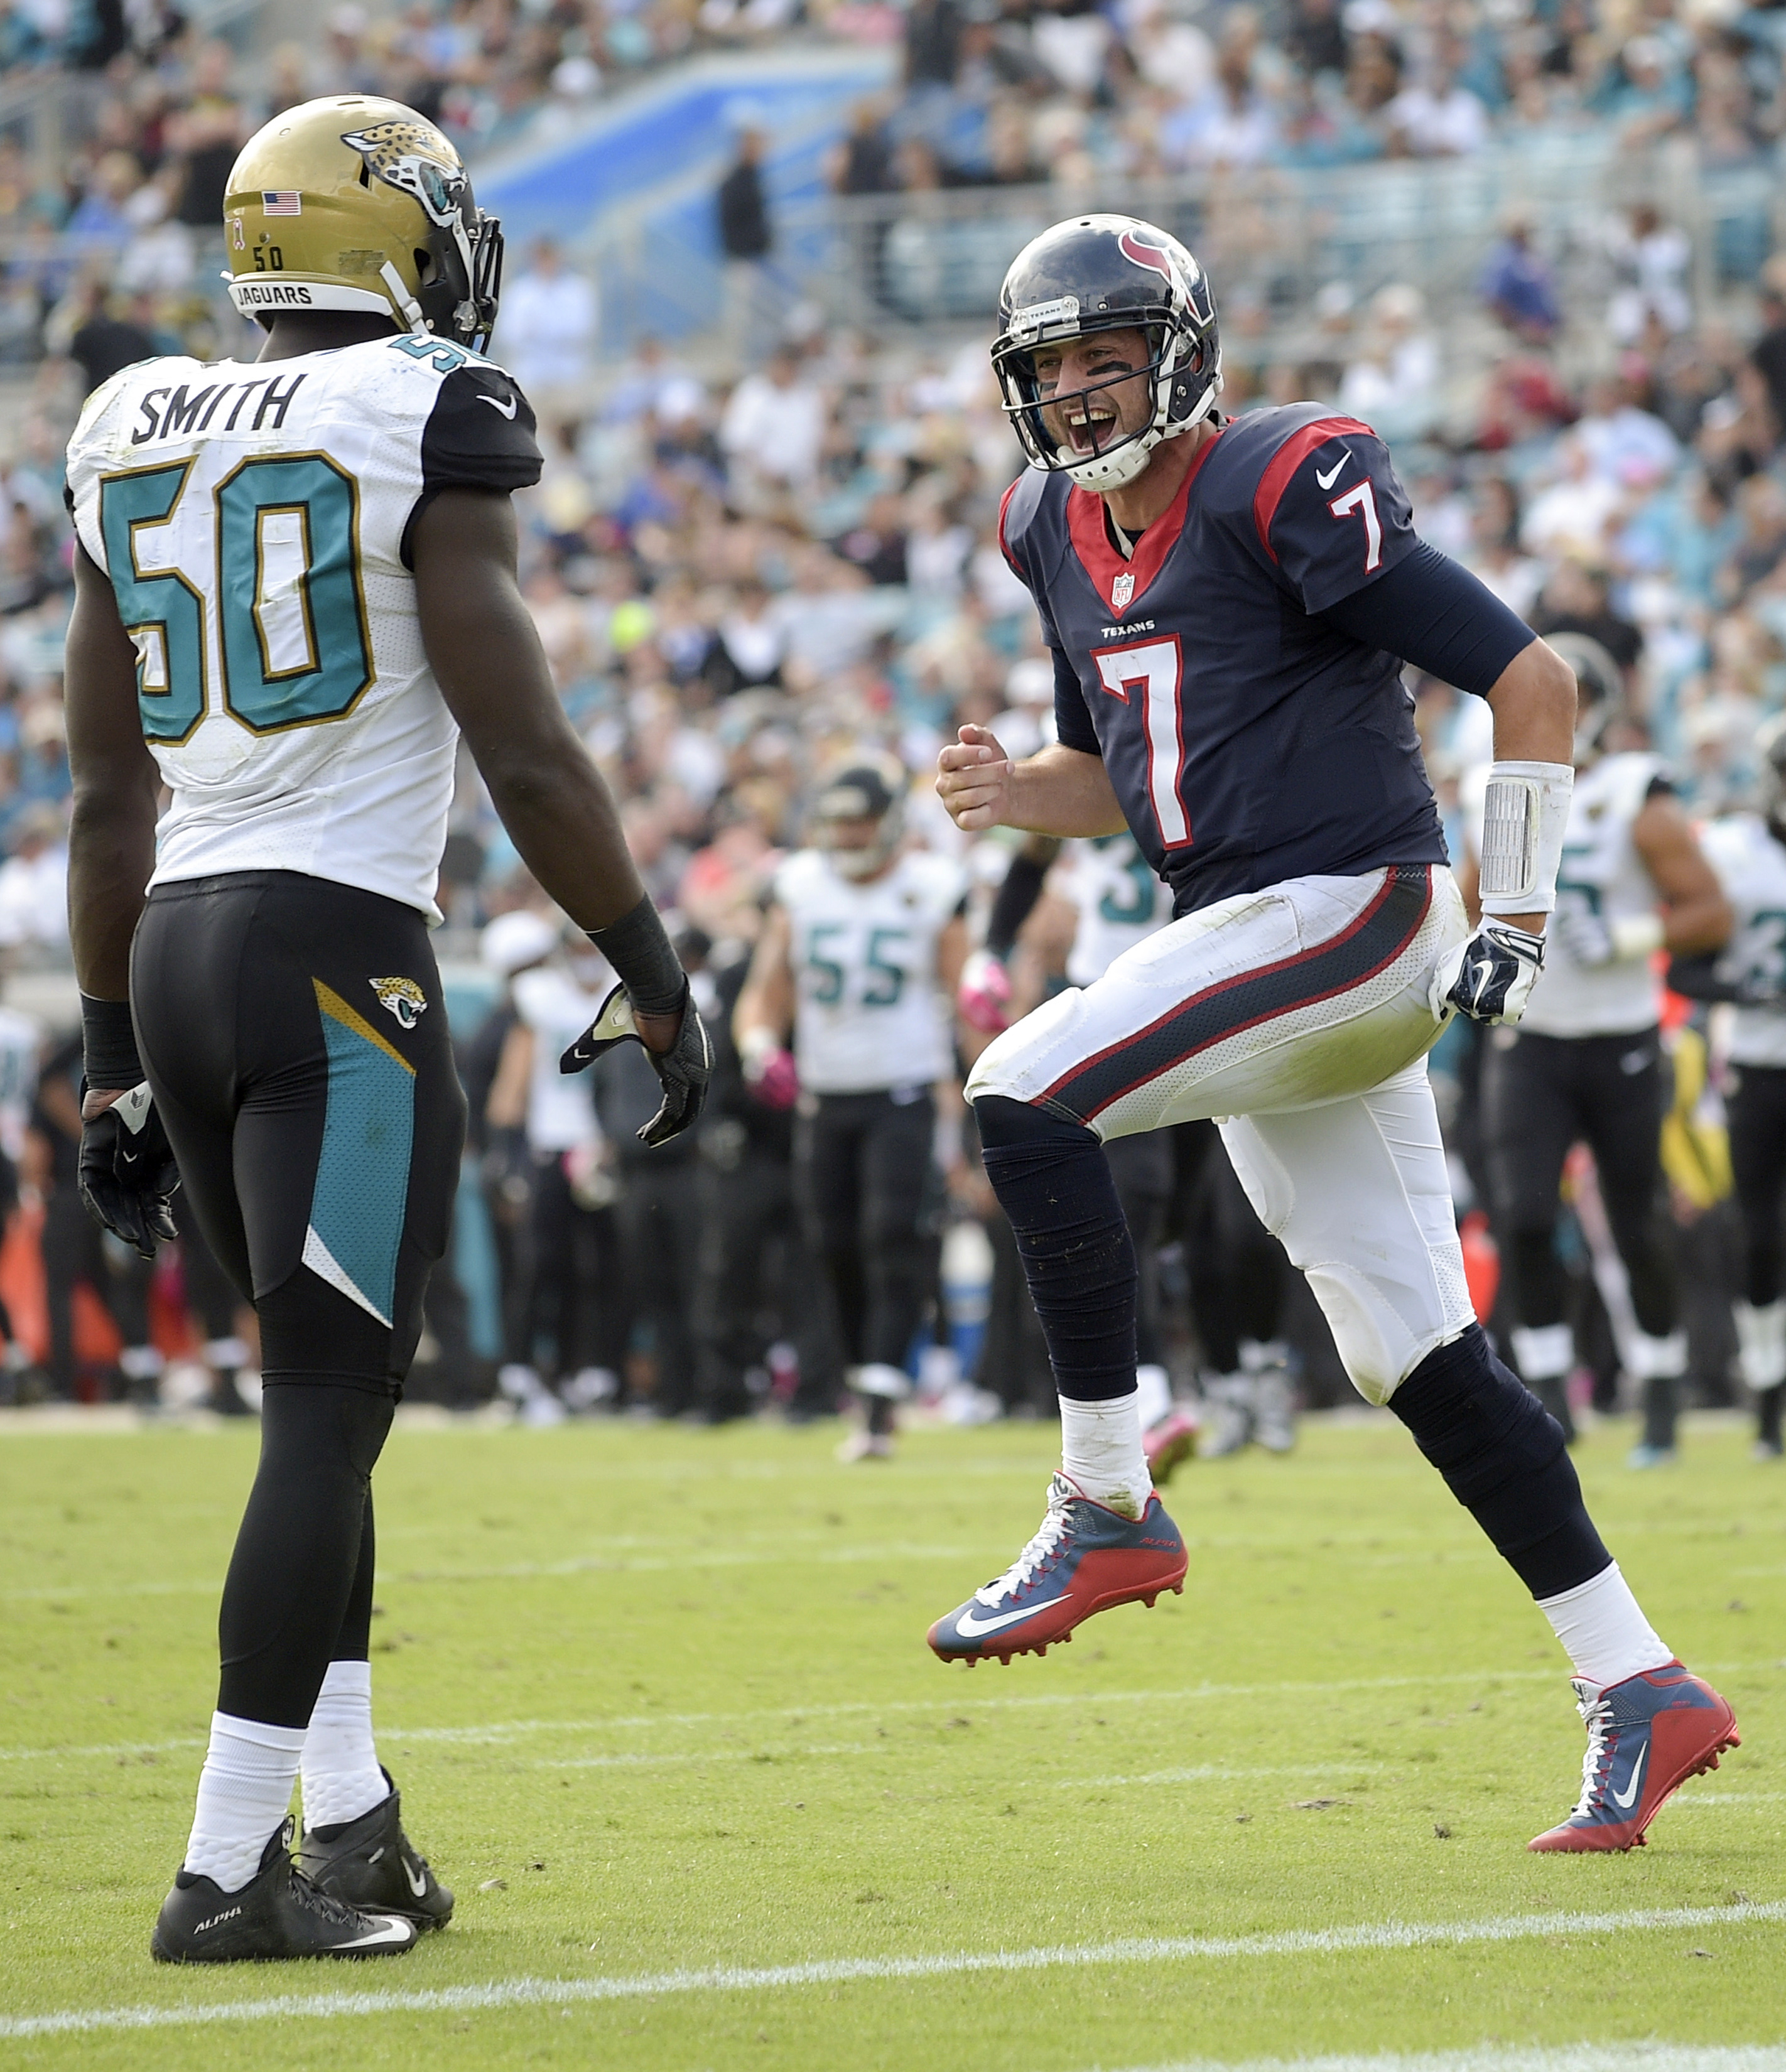 Houston Texans quarterback Brian Hoyer (7) celebrates in front of Jacksonville Jaguars outside linebacker Telvin Smith (50) after throwing a touchdown pass during the second half of an NFL football game in Jacksonville, Fla., Sunday, Oct. 18, 2015. (AP Ph